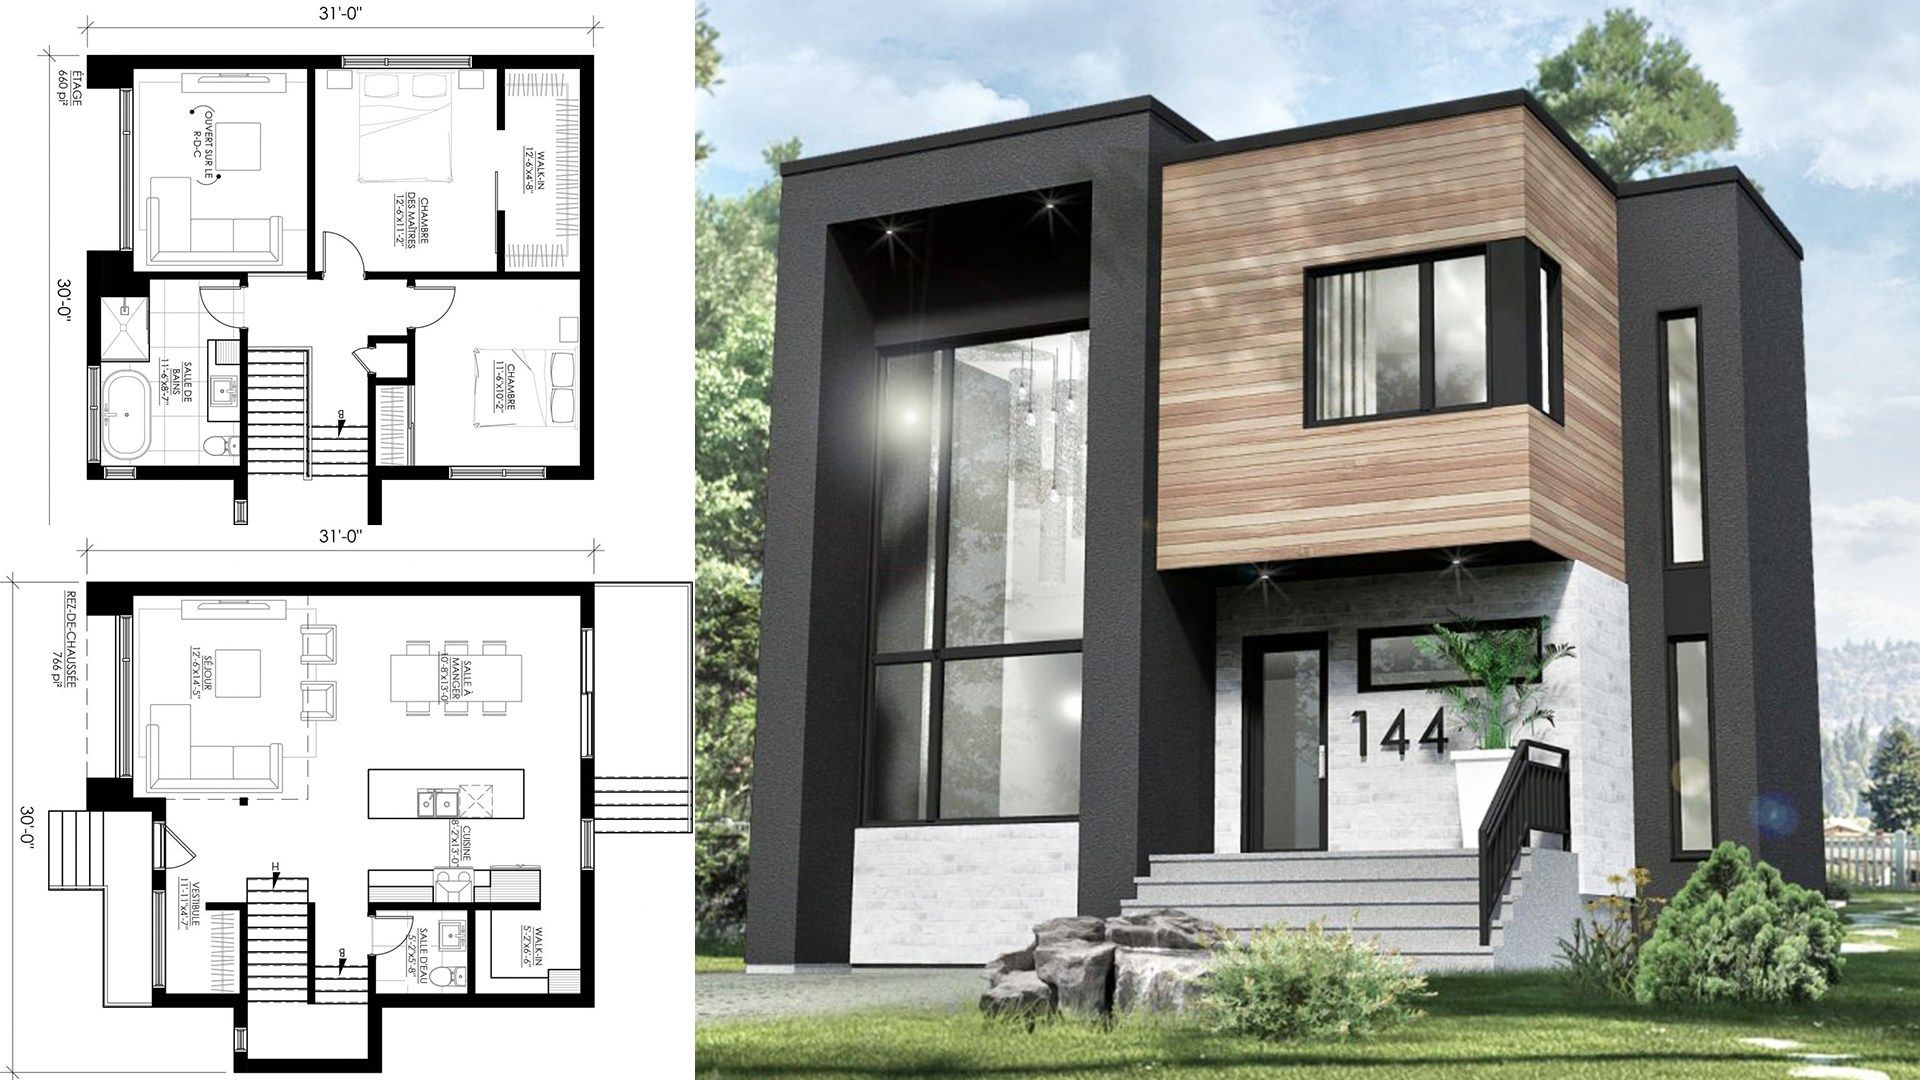 This Small Modern House 30x31 Has 3 Bedrooms With Its Two Storey Living Room The Plan Will Small Modern Home Small Modern House Plans House Designs Exterior